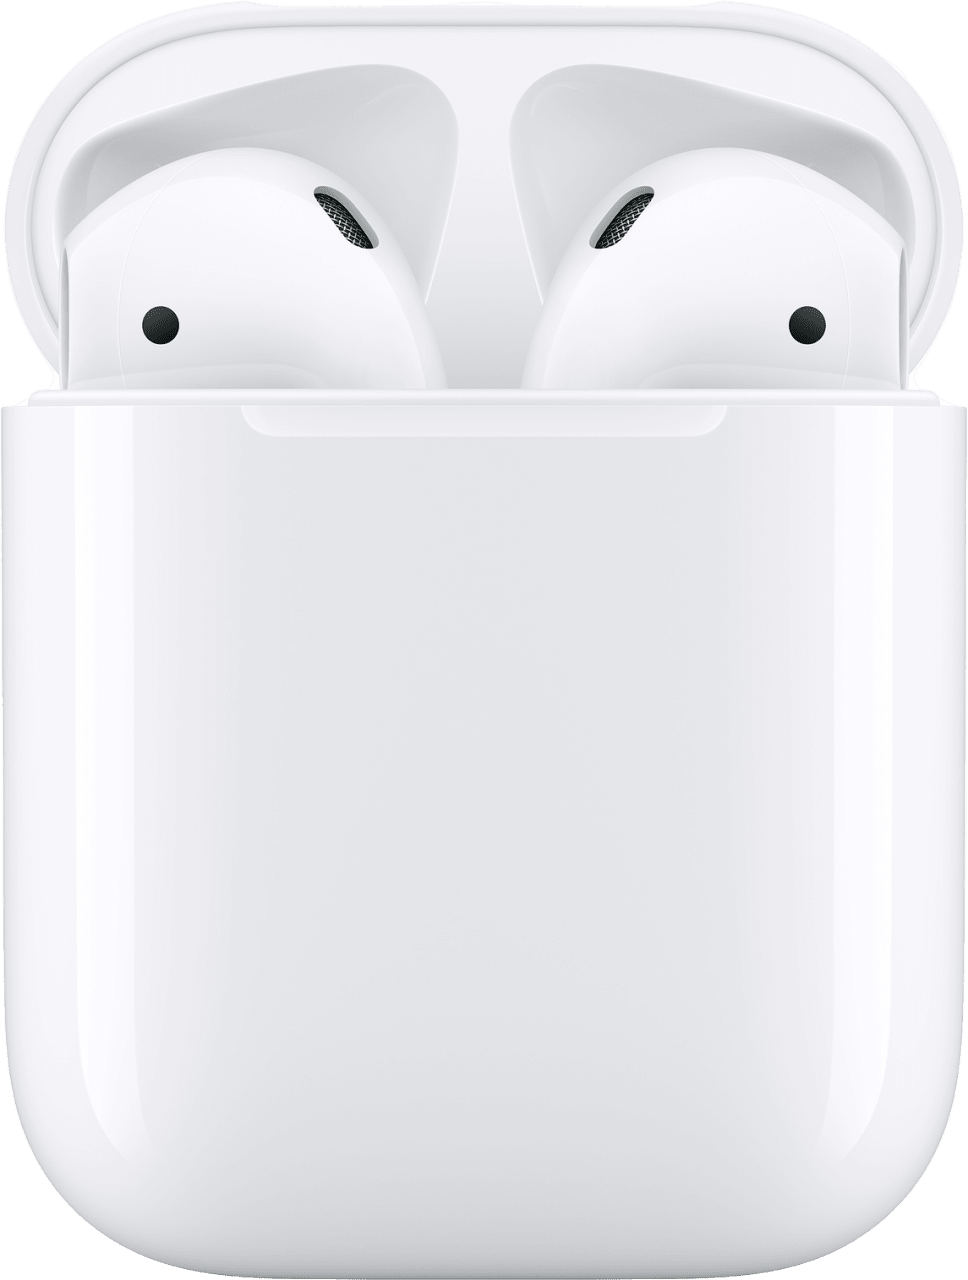 Weiß Apple AirPods Gen2 with Charging Case.1